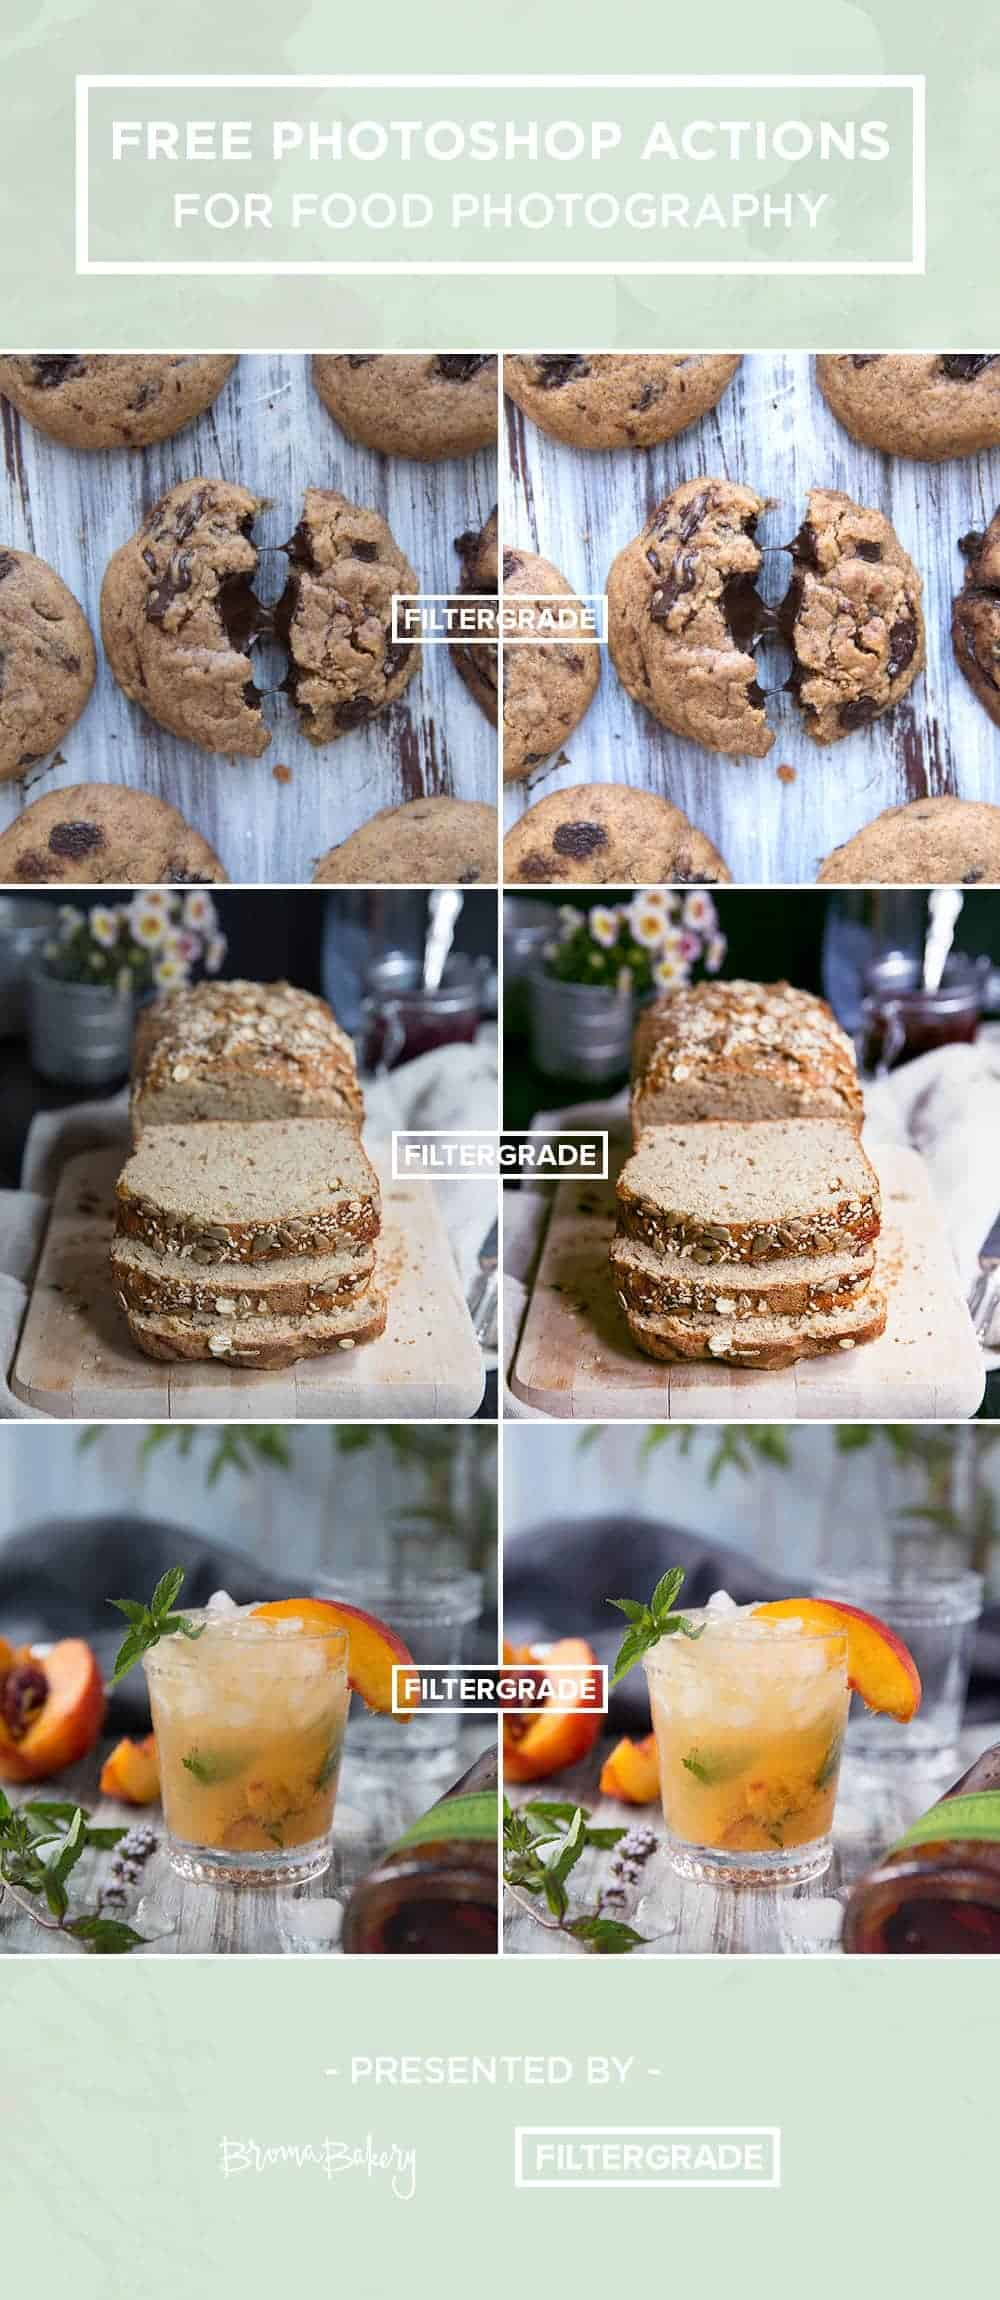 Transform your photographs instantly with free Photoshop actions for food photography!